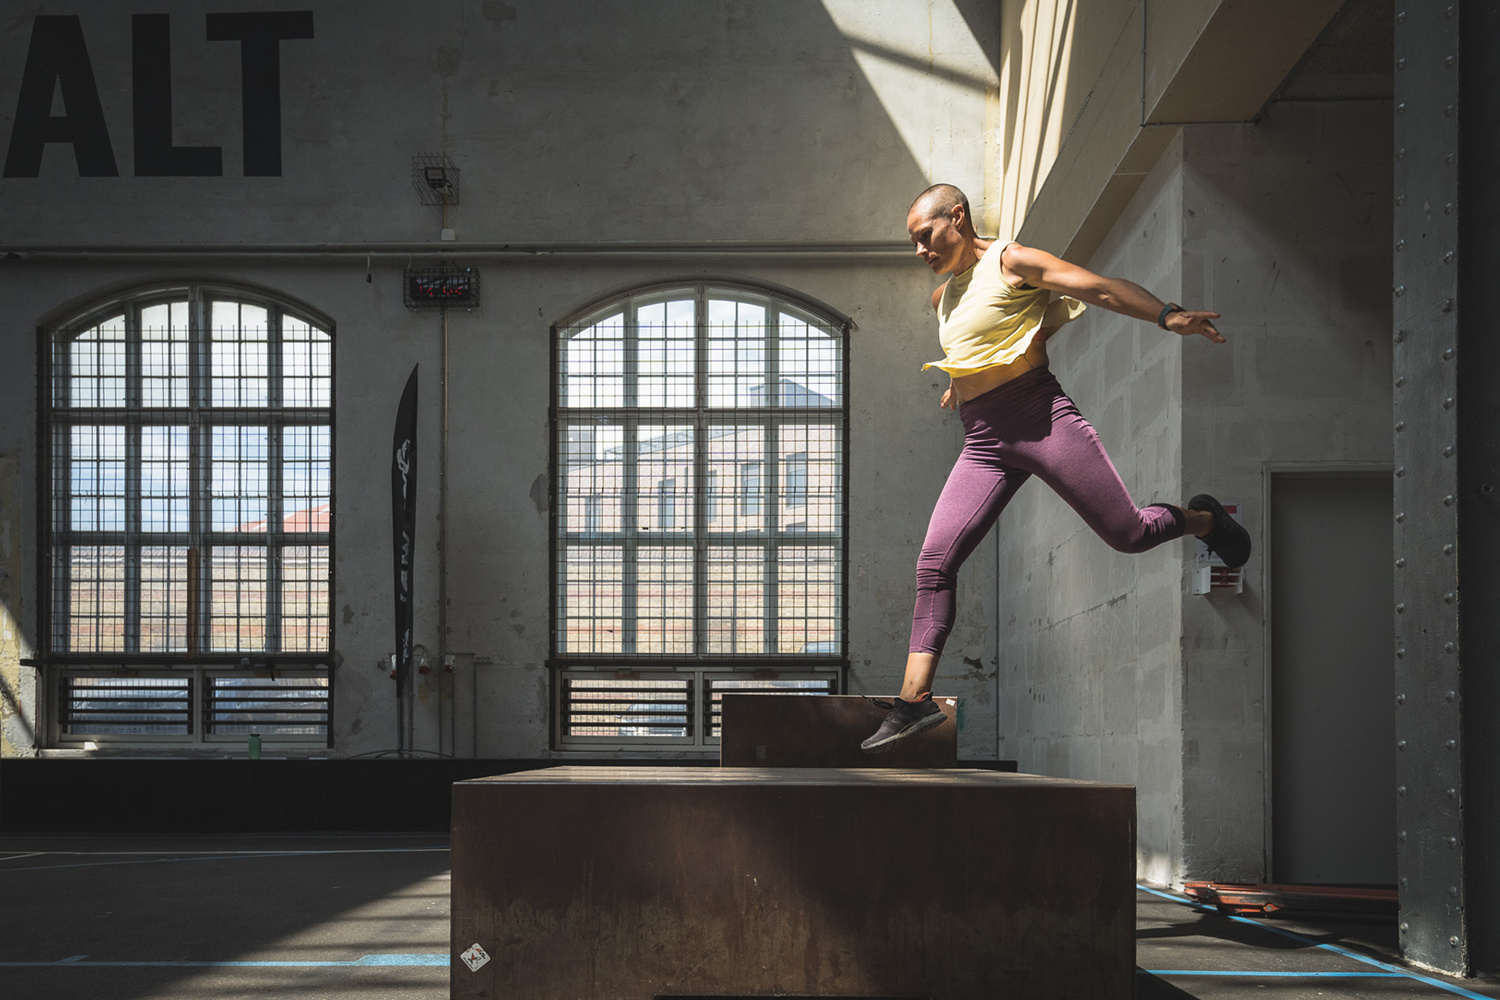 Parkour photography by Andy Day